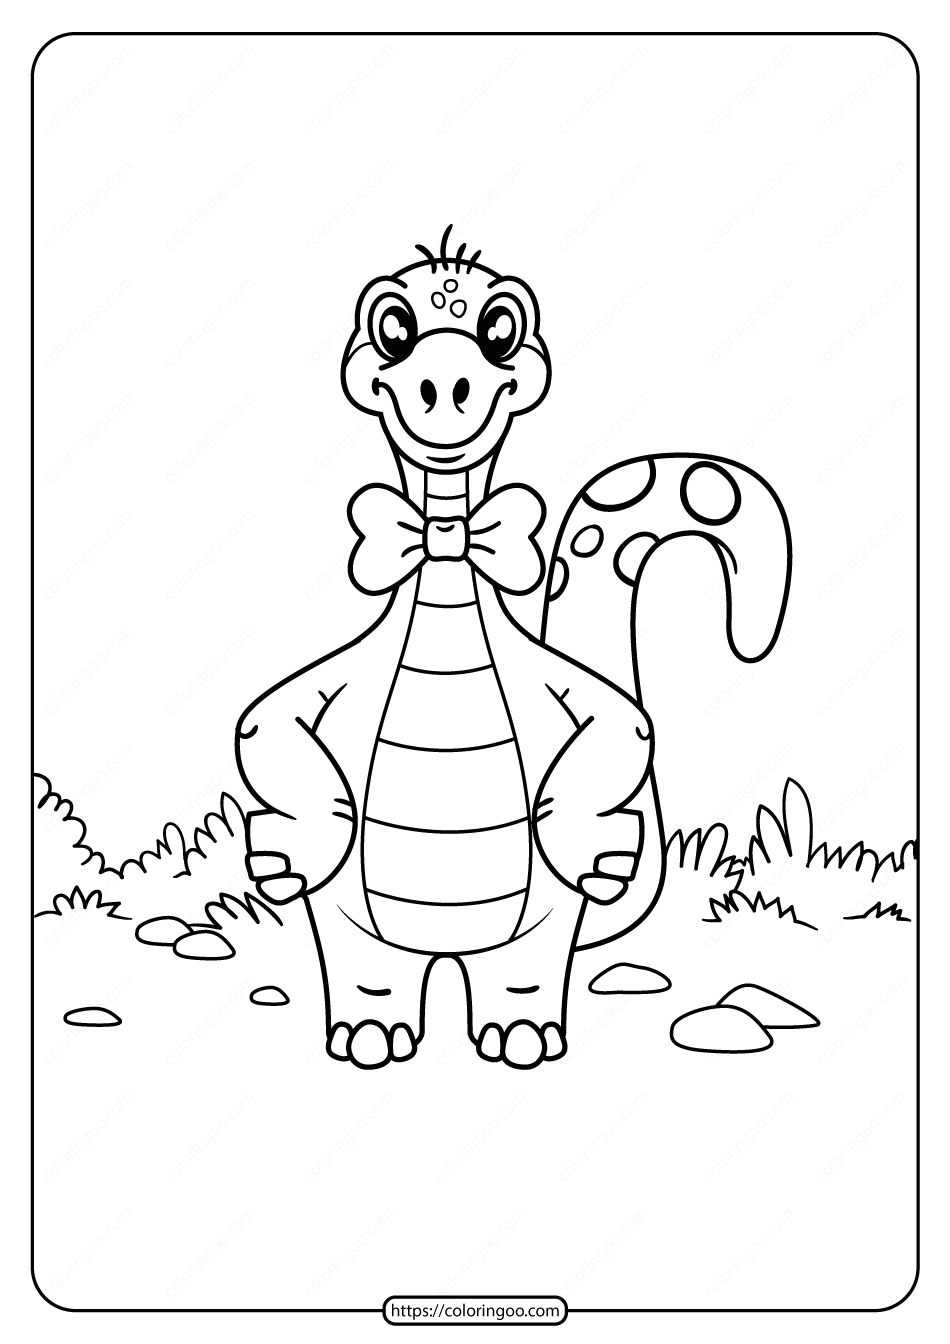 Free Printable Animals Dinosaur Coloring Pages 13